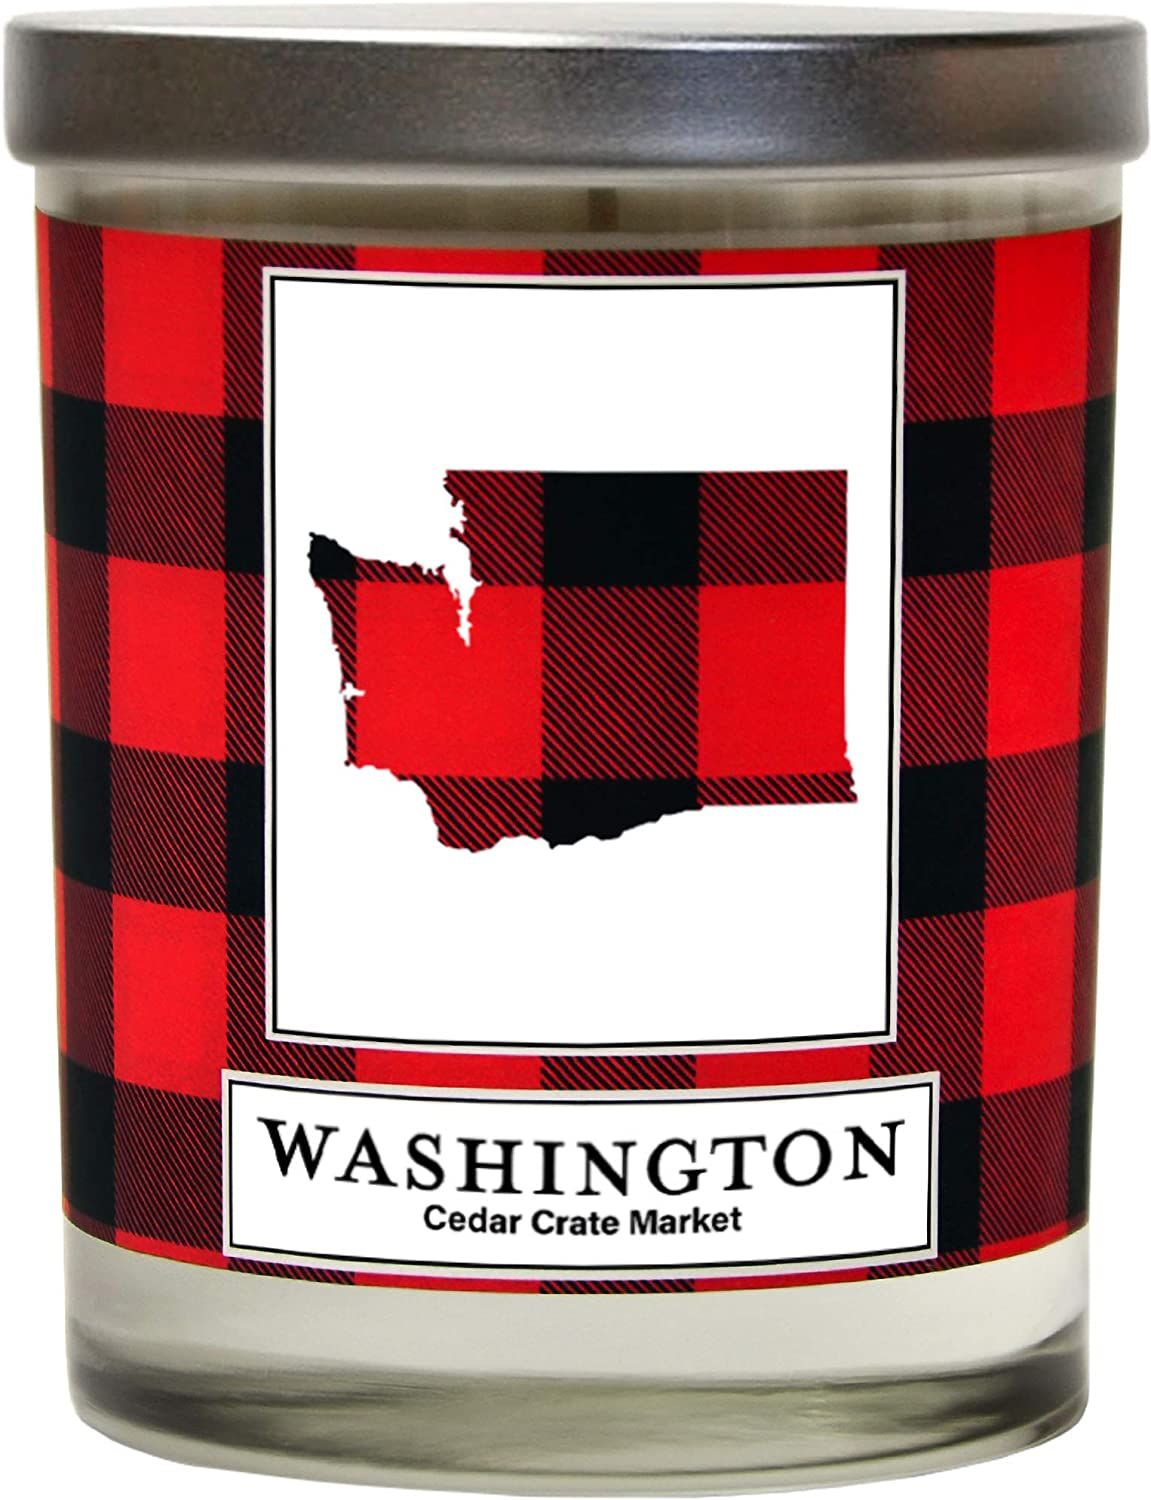 Washington Buffalo Plaid Scented Soy Candle | Fraser Fir, Pine Needle, Cedarwood | 10 Oz. Glass Jar Candle | Made in The USA | Decorative Candles | Going Away Gifts for Friends | State Candles